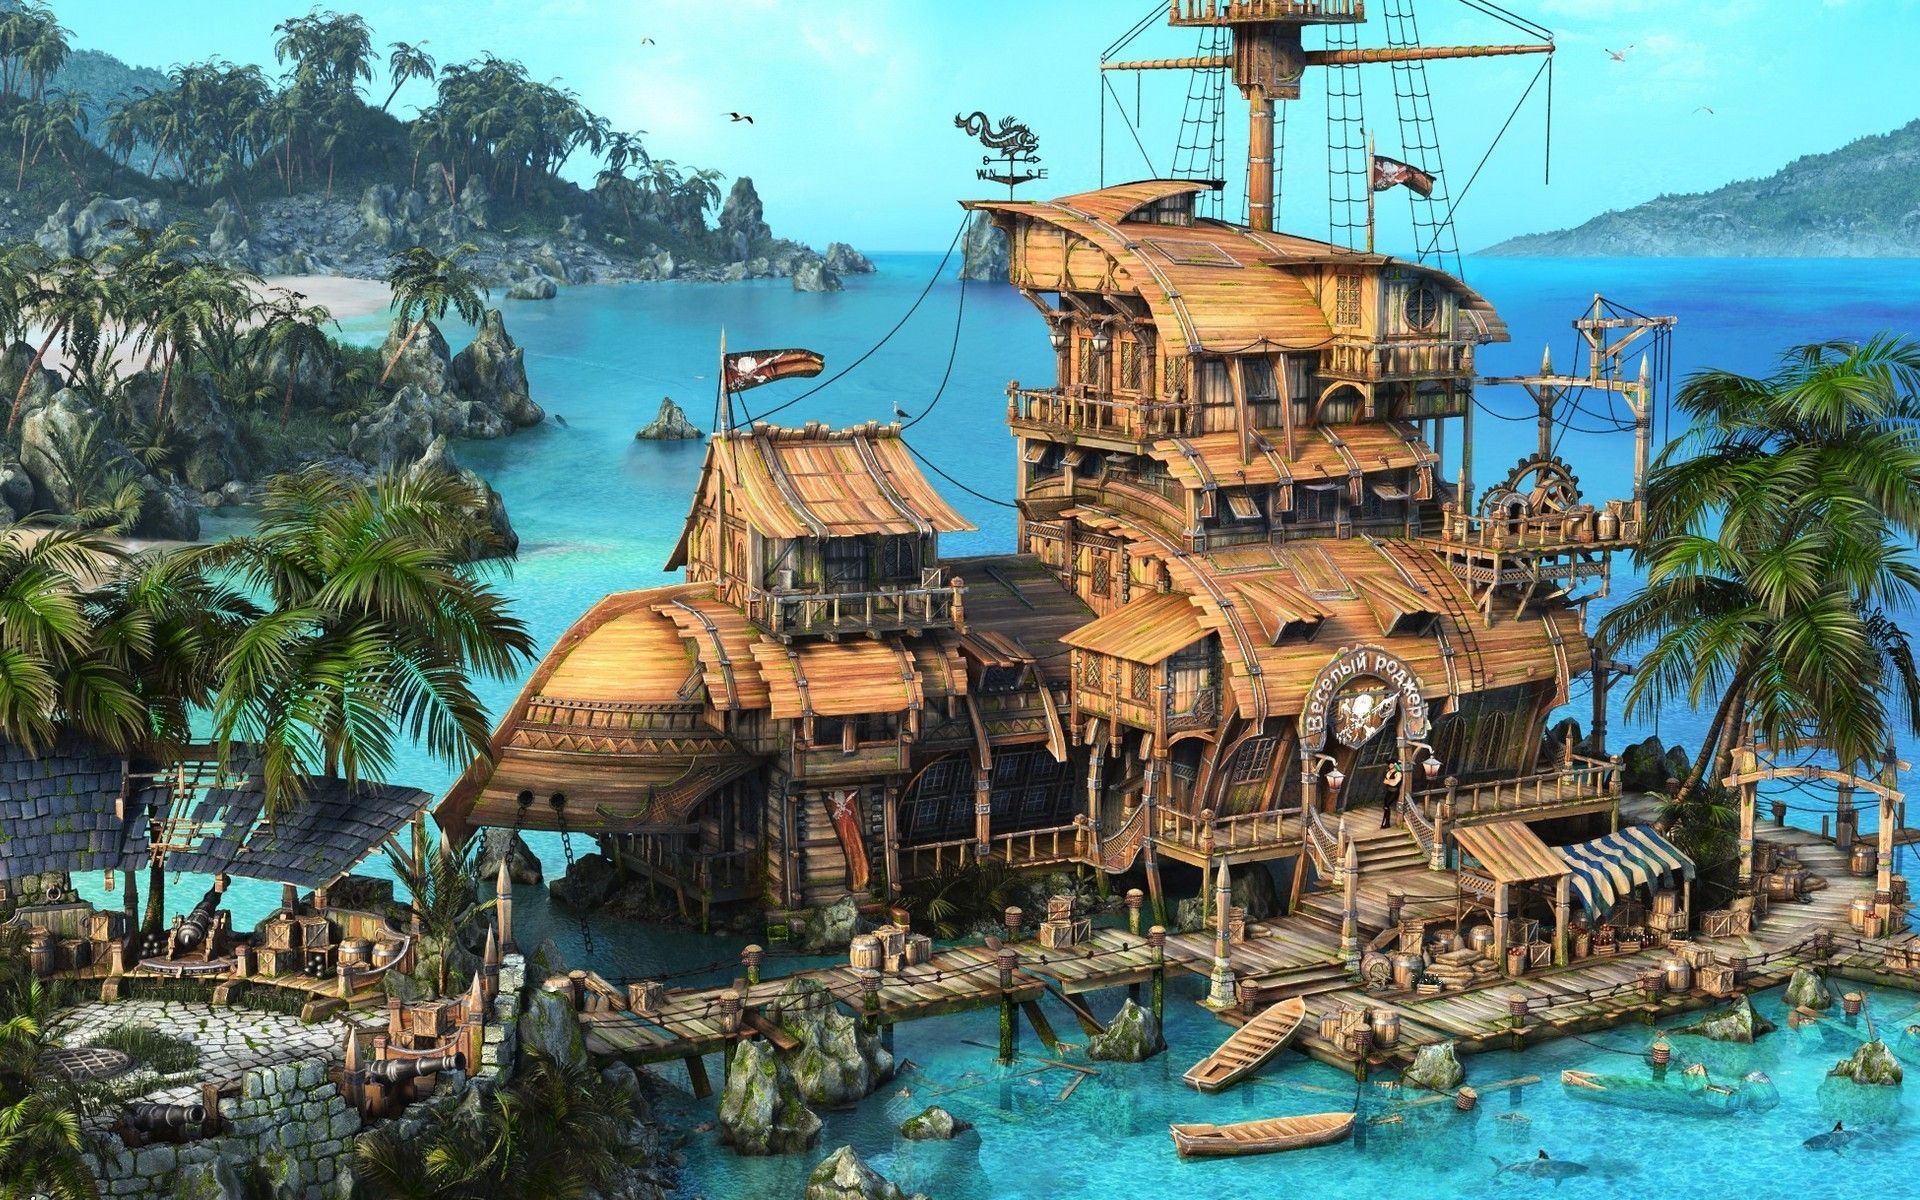 Fantasy ship cliff jolly roger pirate ship rock lightning wallpaper - Paintings Ocean Mod Ships Bar Pirates Tropical Buildings Islands Sharks Palm Trees Jolly Roger Caribbean Modified